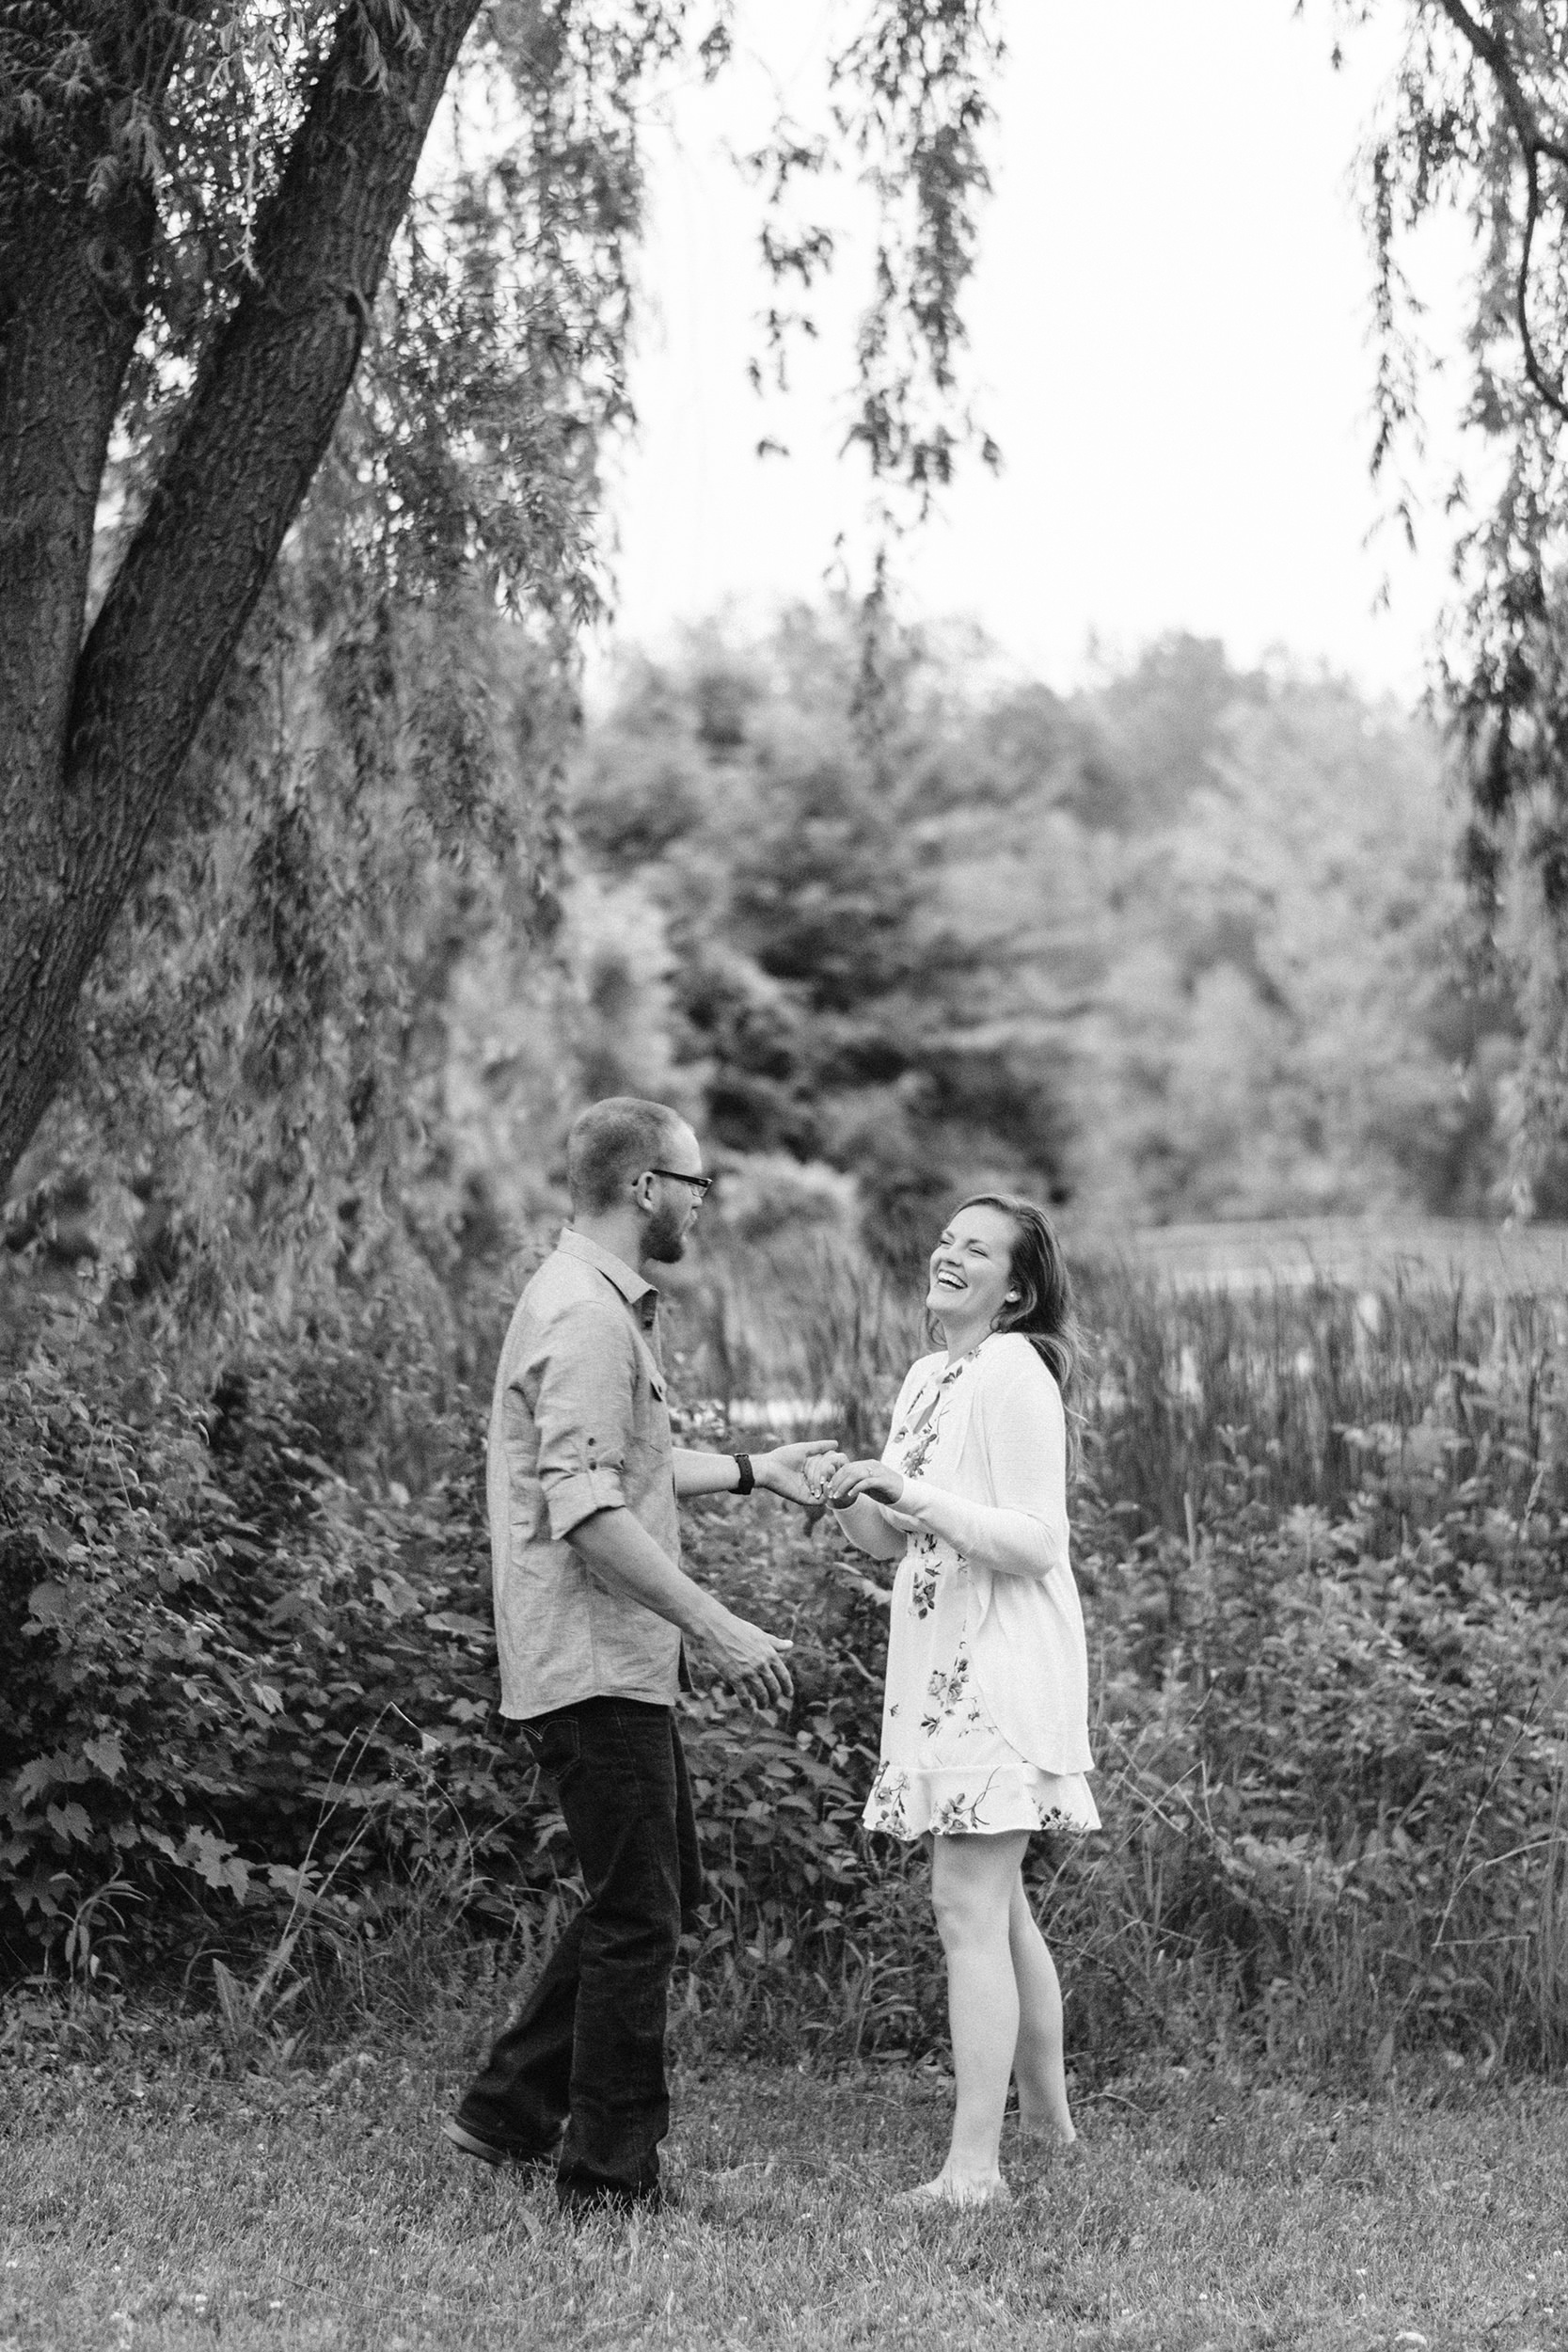 Woman laughing with fiancé